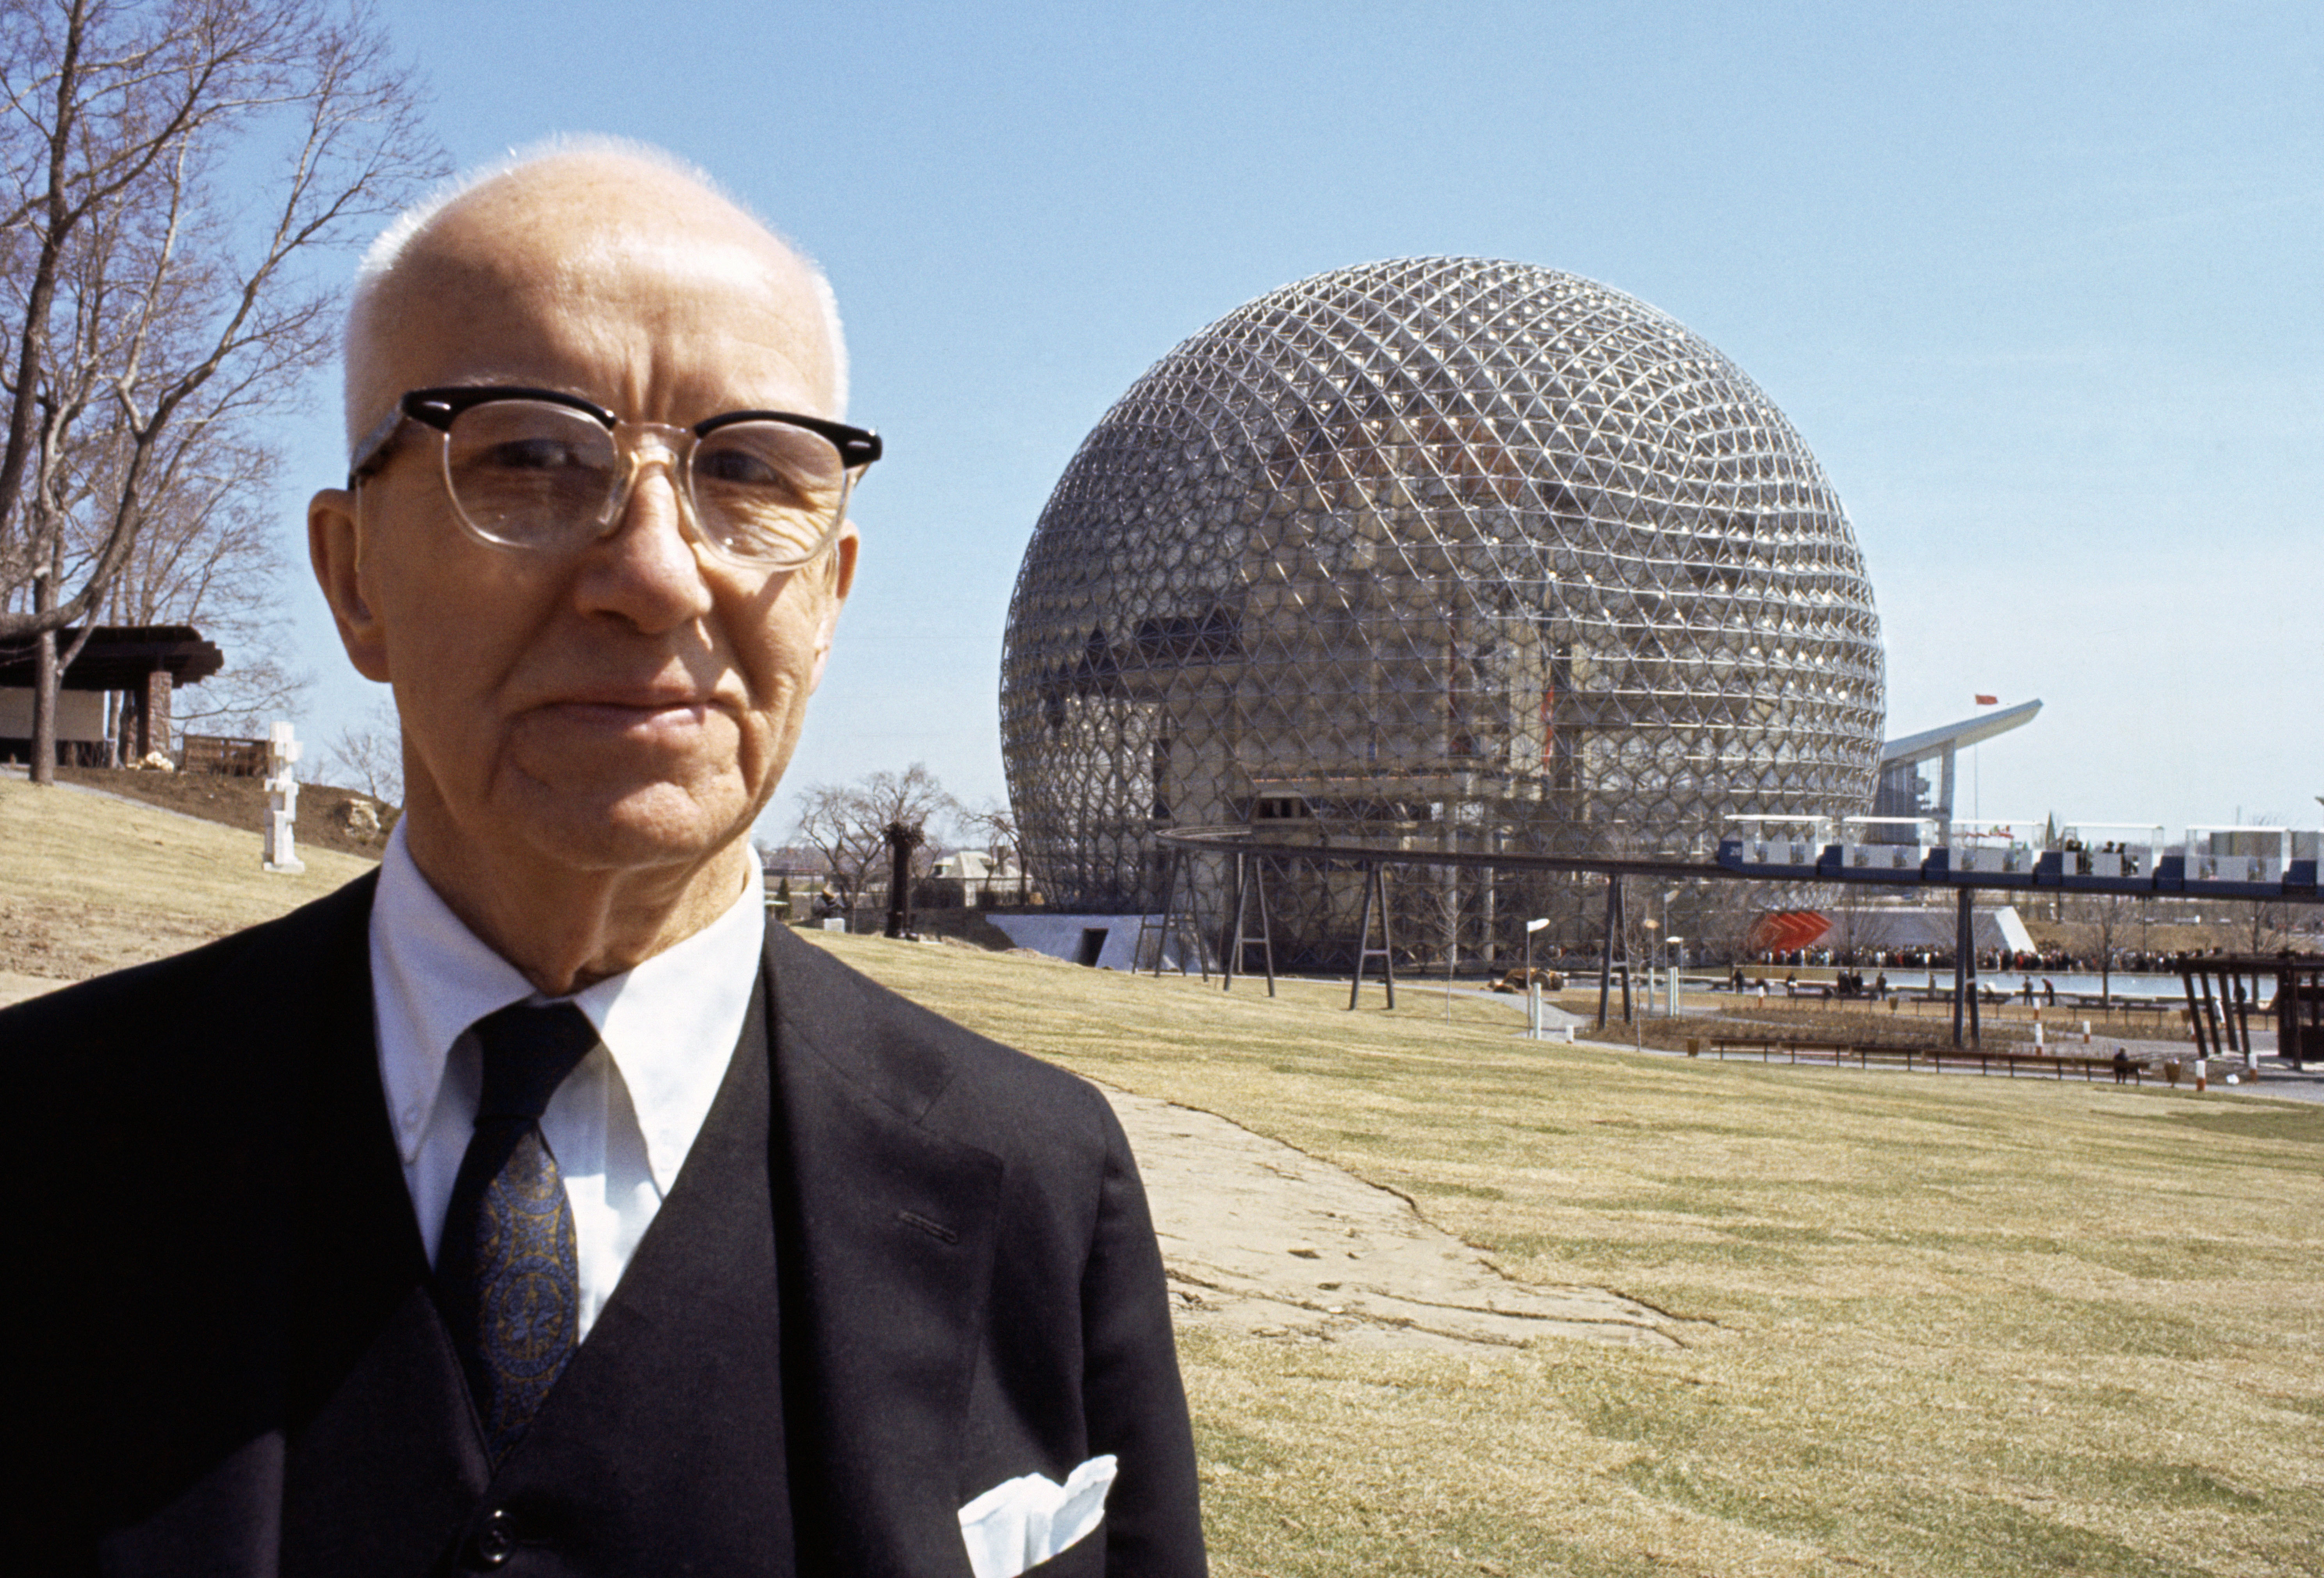 Buckminster Fuller before his geode dome at Montreal's World Fair.